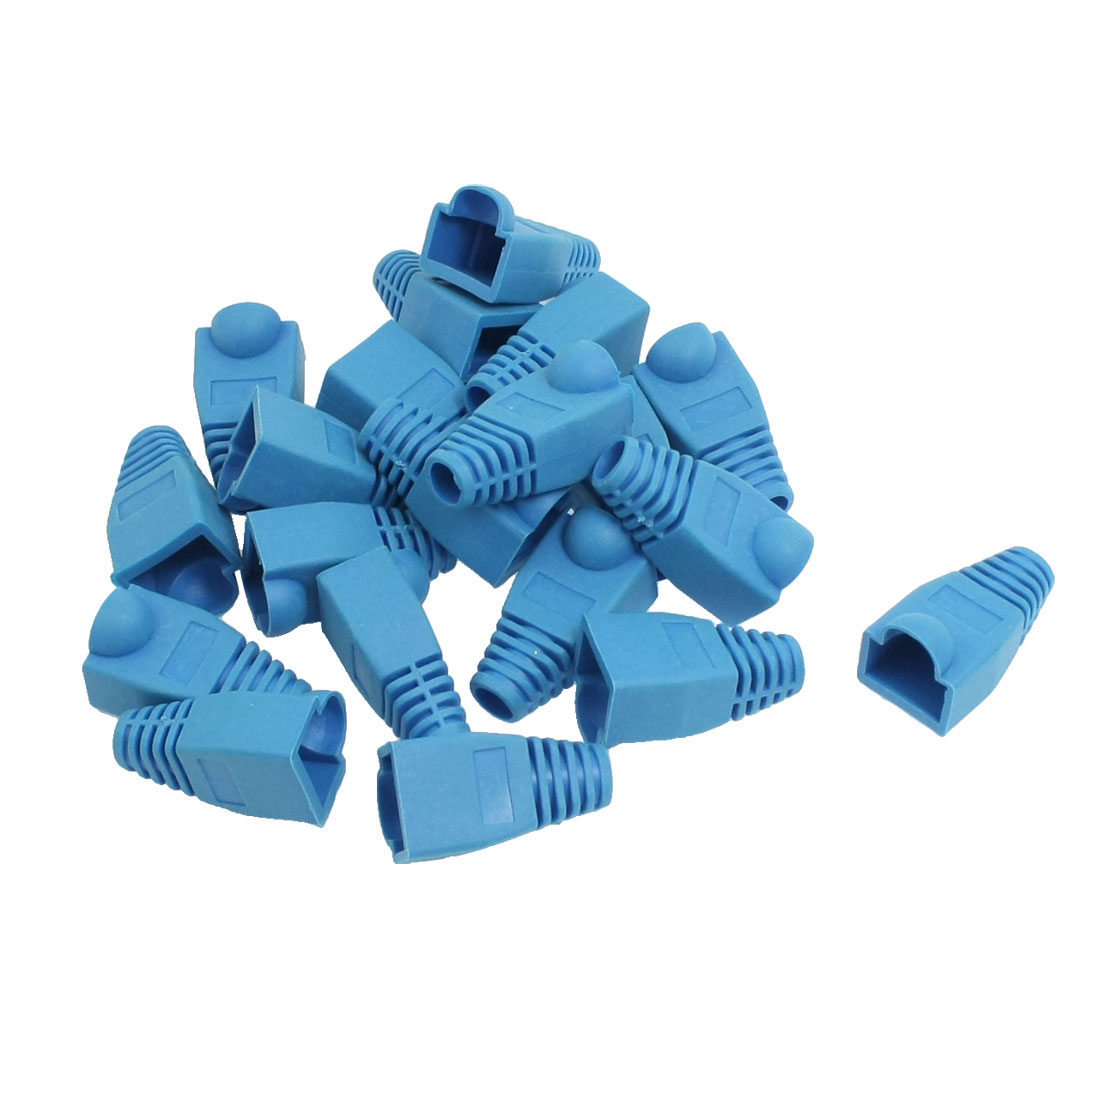 Network Cable Boots Cap Cover for RJ45 Connectors Blue 20 Pieces